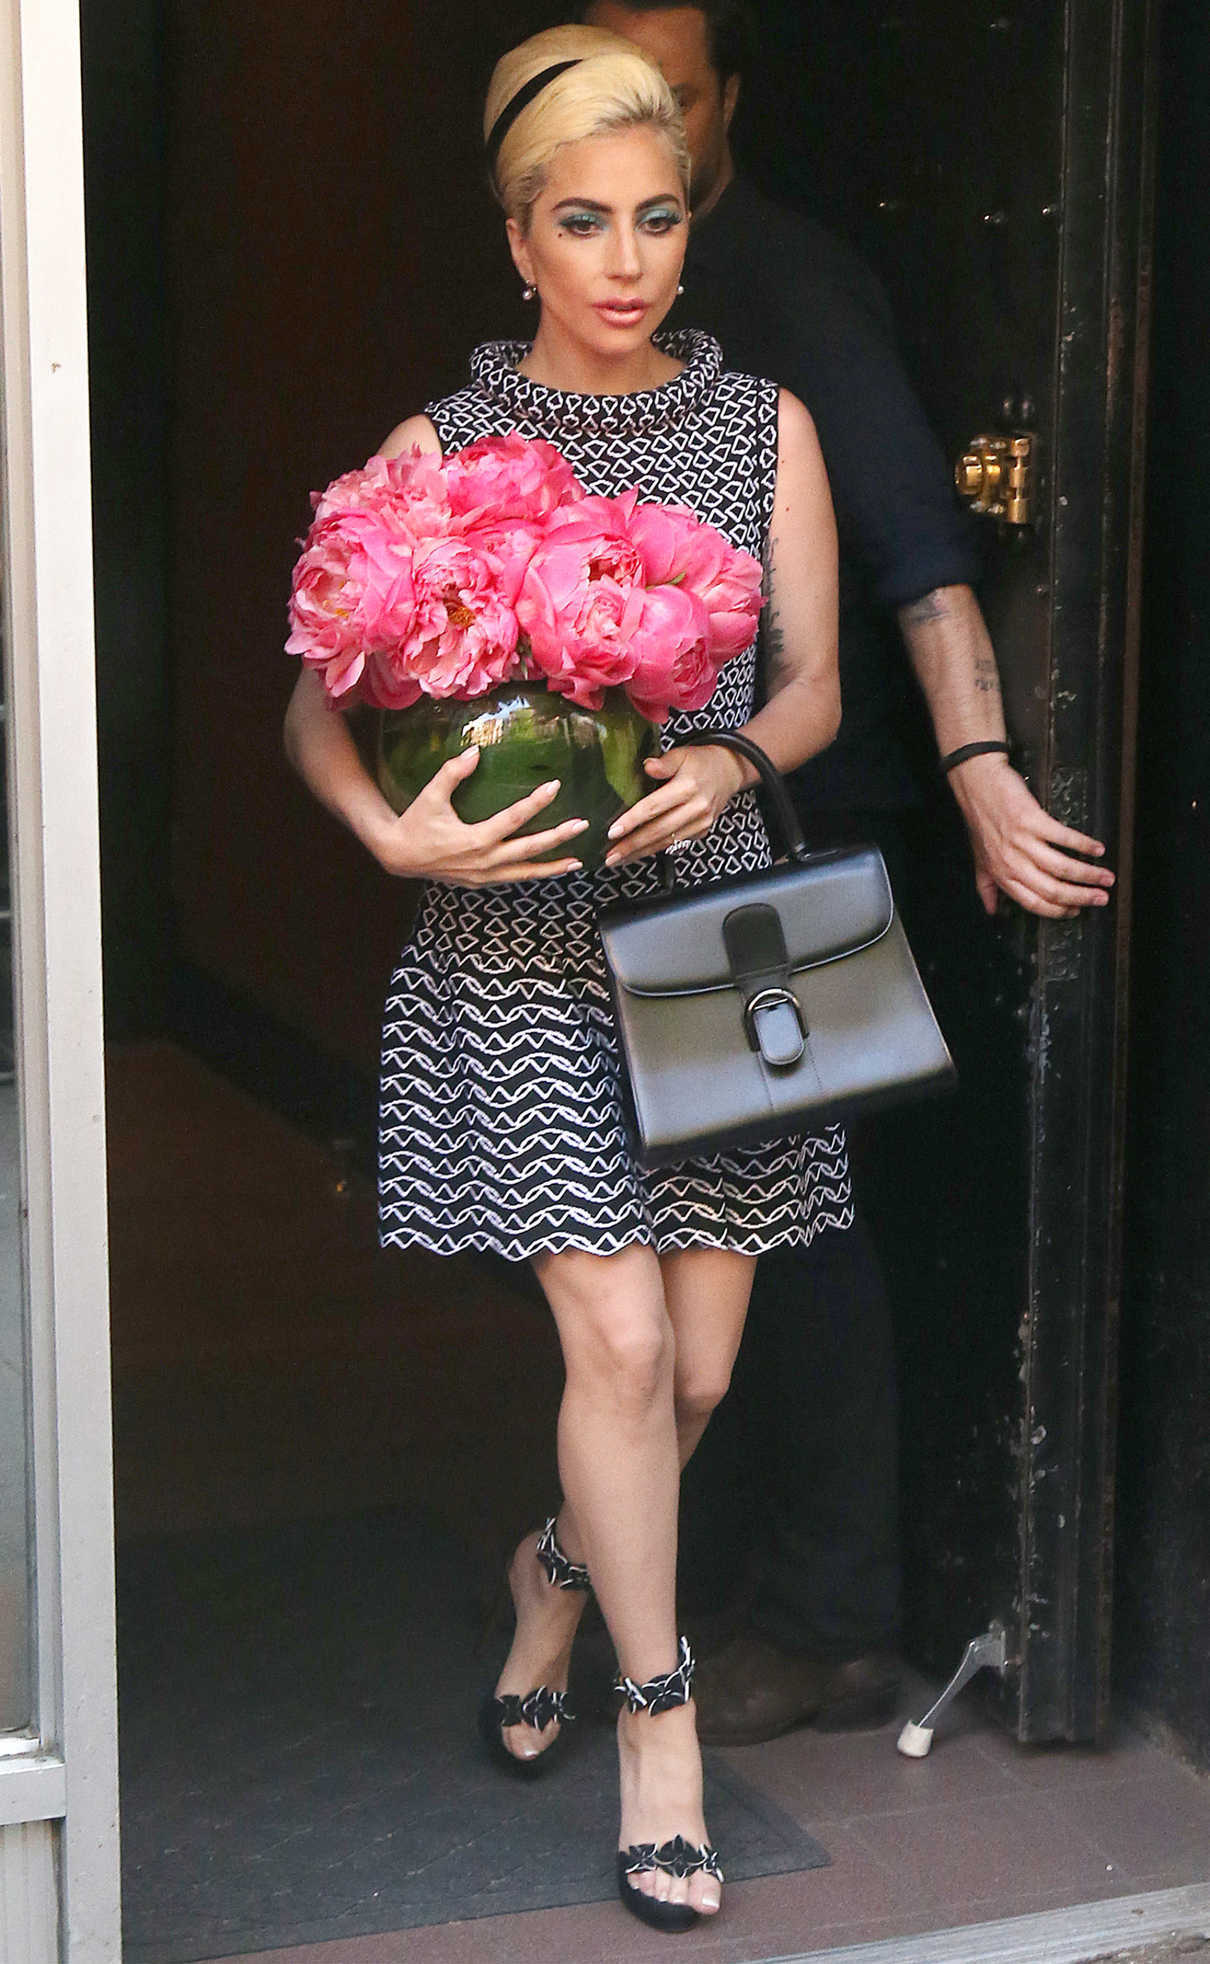 lady-gaga-leaves-electric-lady-sound-studios-in-nyc-05-25-2018-1.jpg